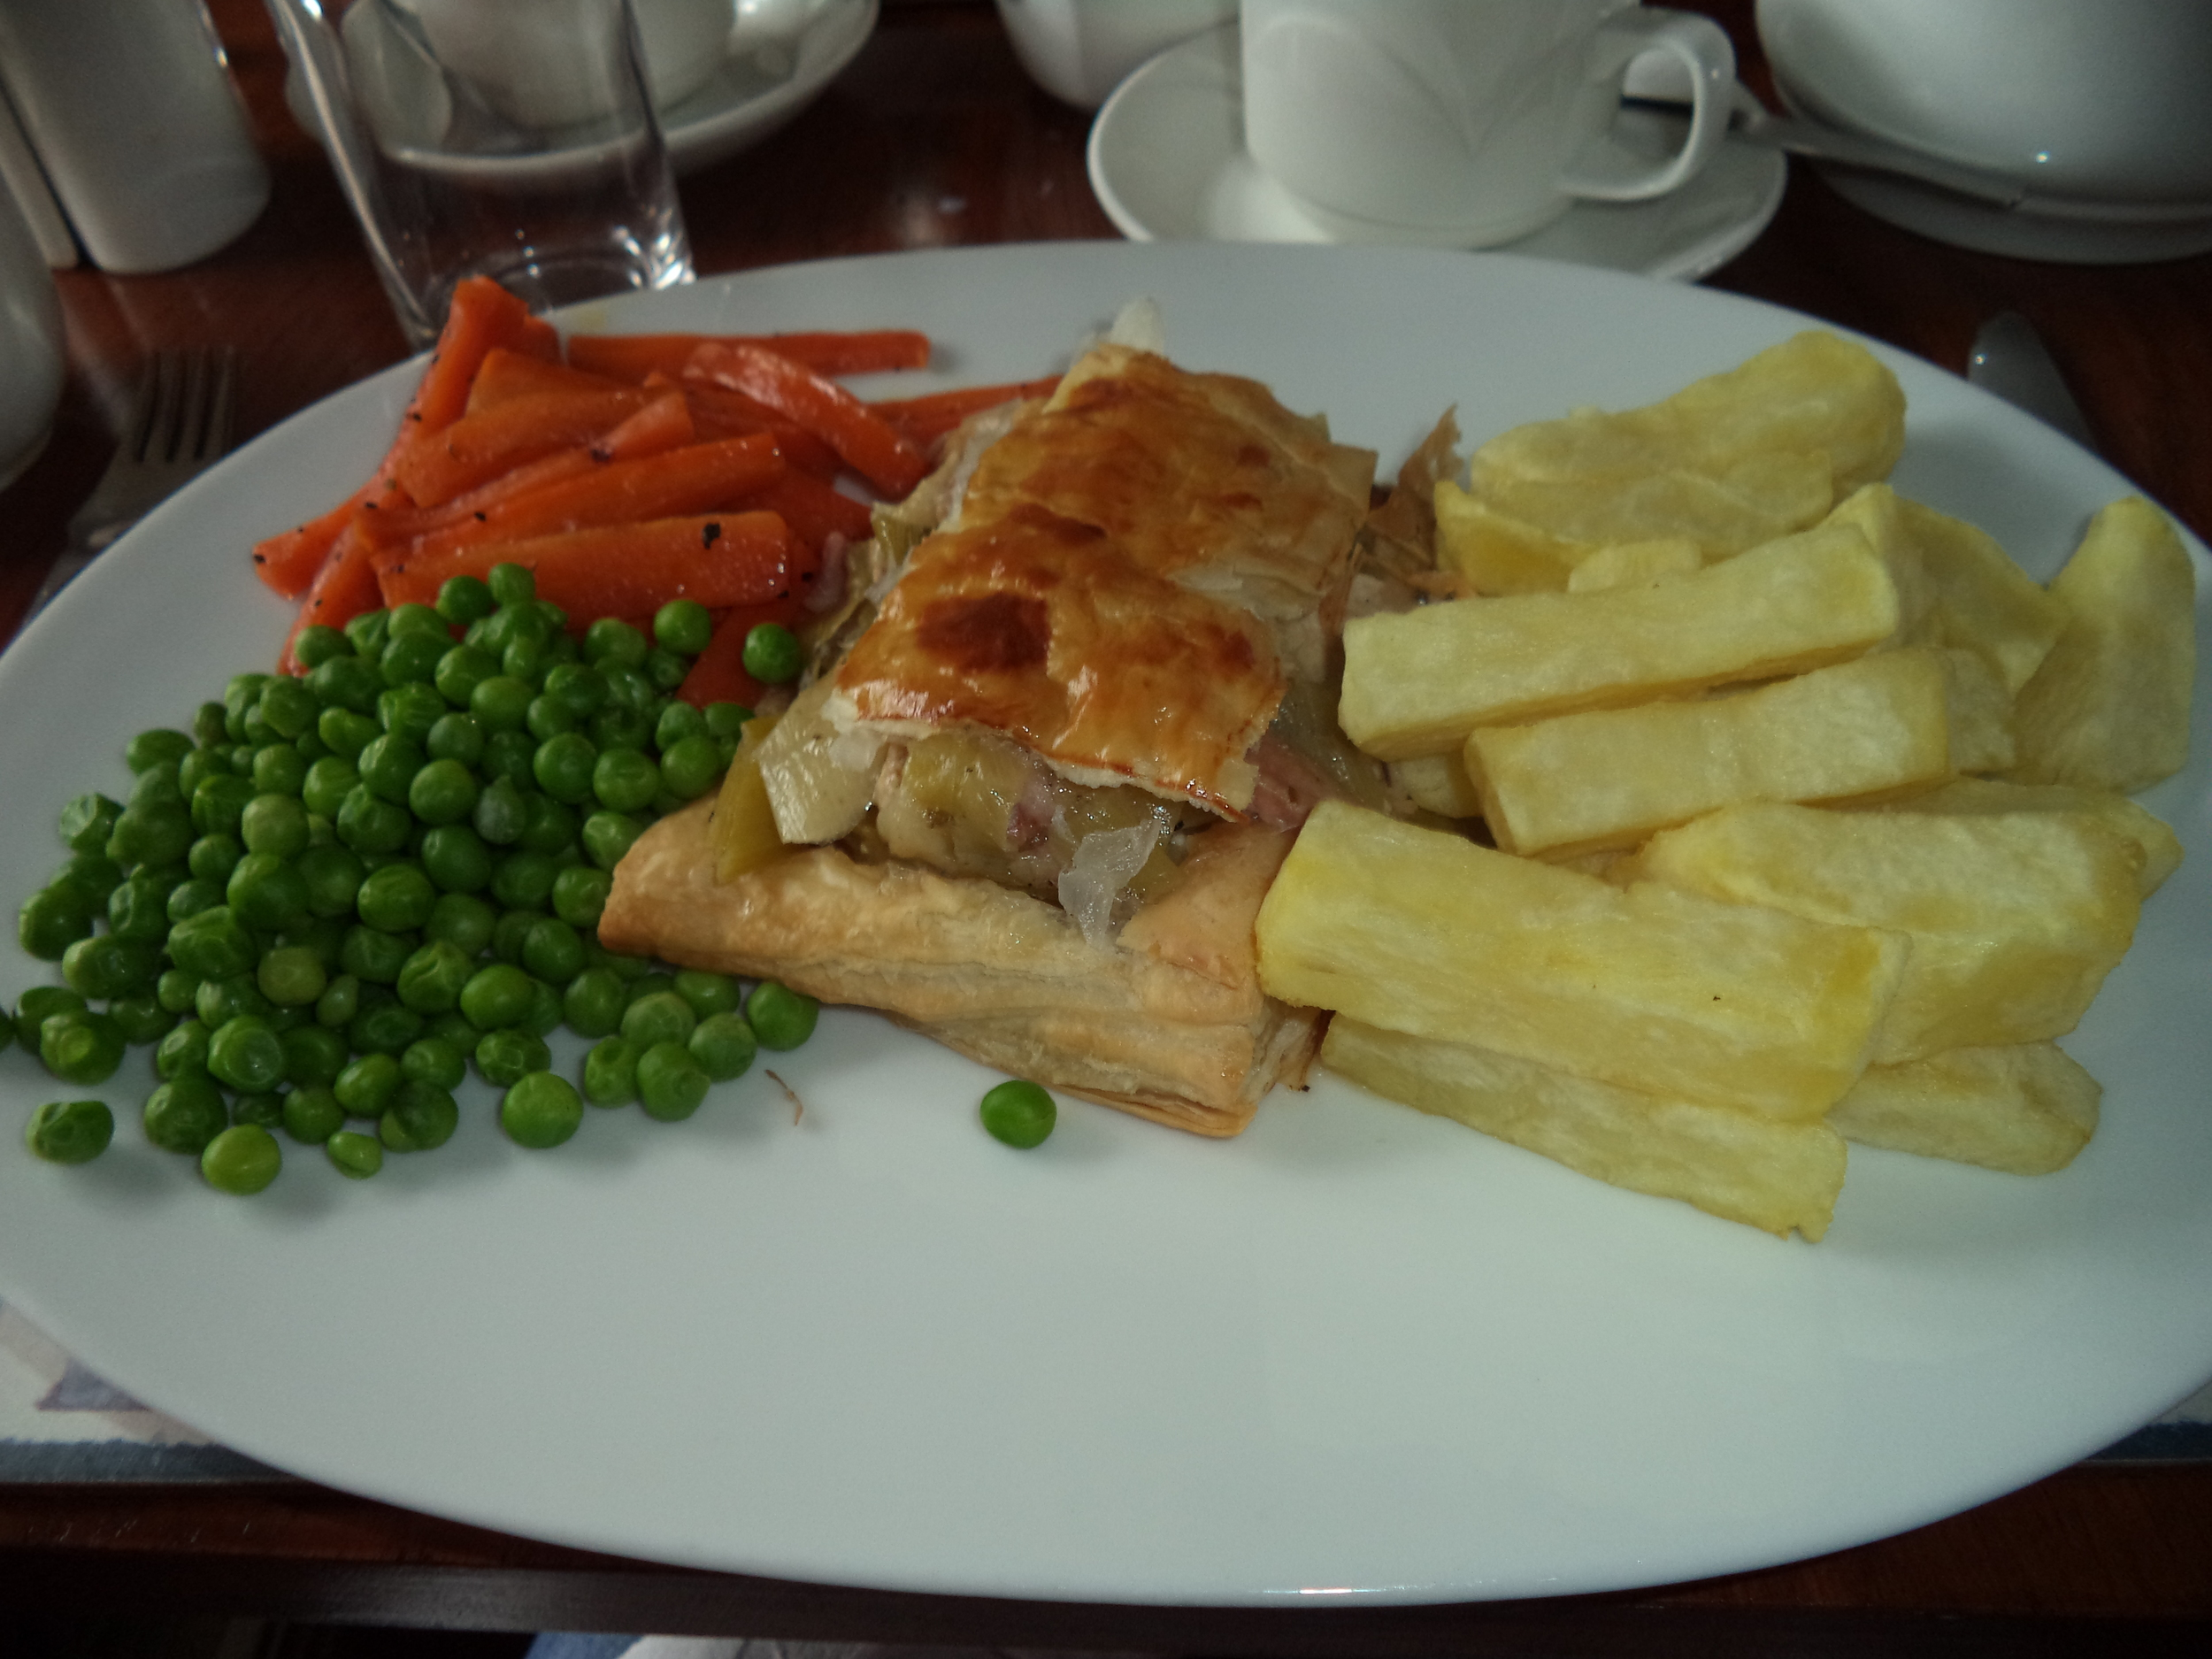 Chicken and Leek Pie with the dessert carrots!